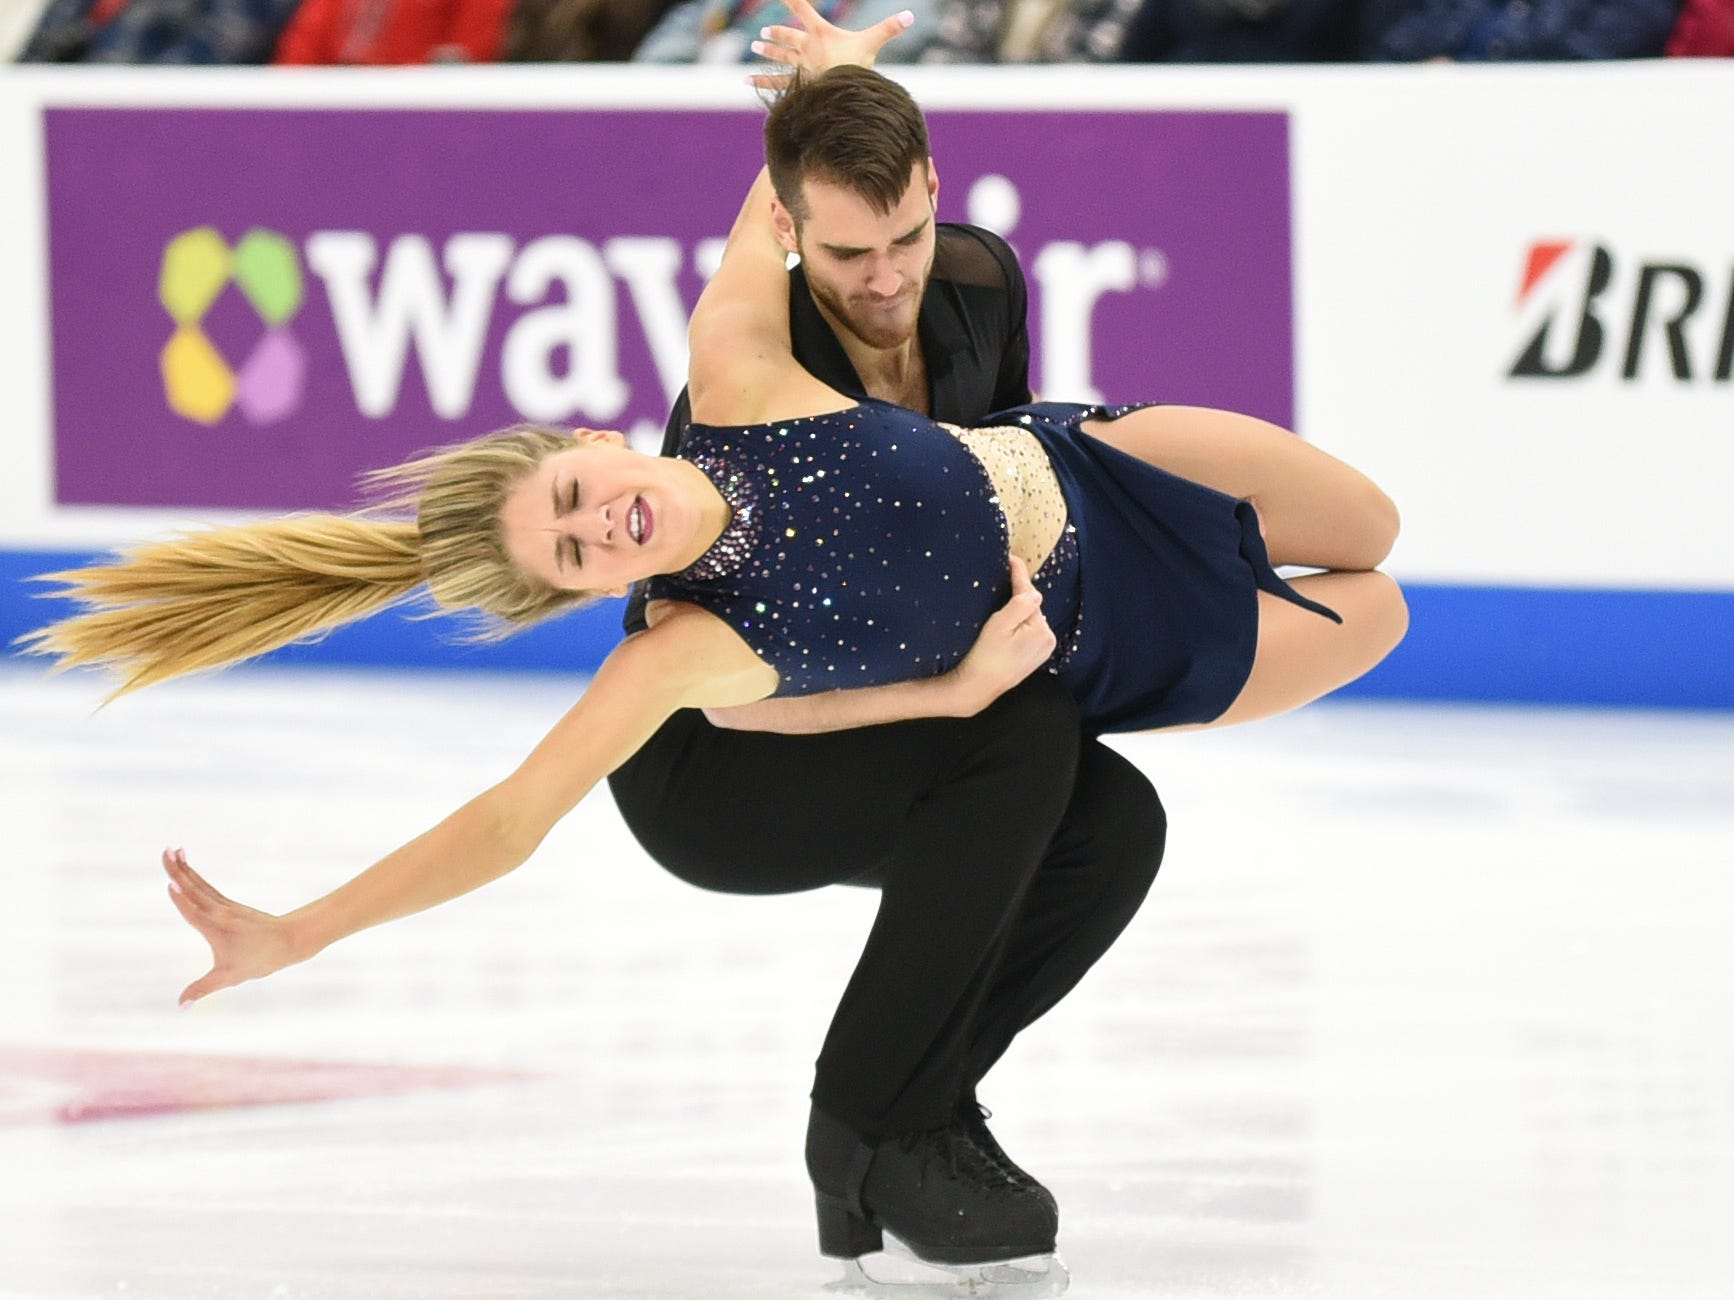 Lydia Erdman and Yuri Vlasenko perform during the rhythm dance competition.